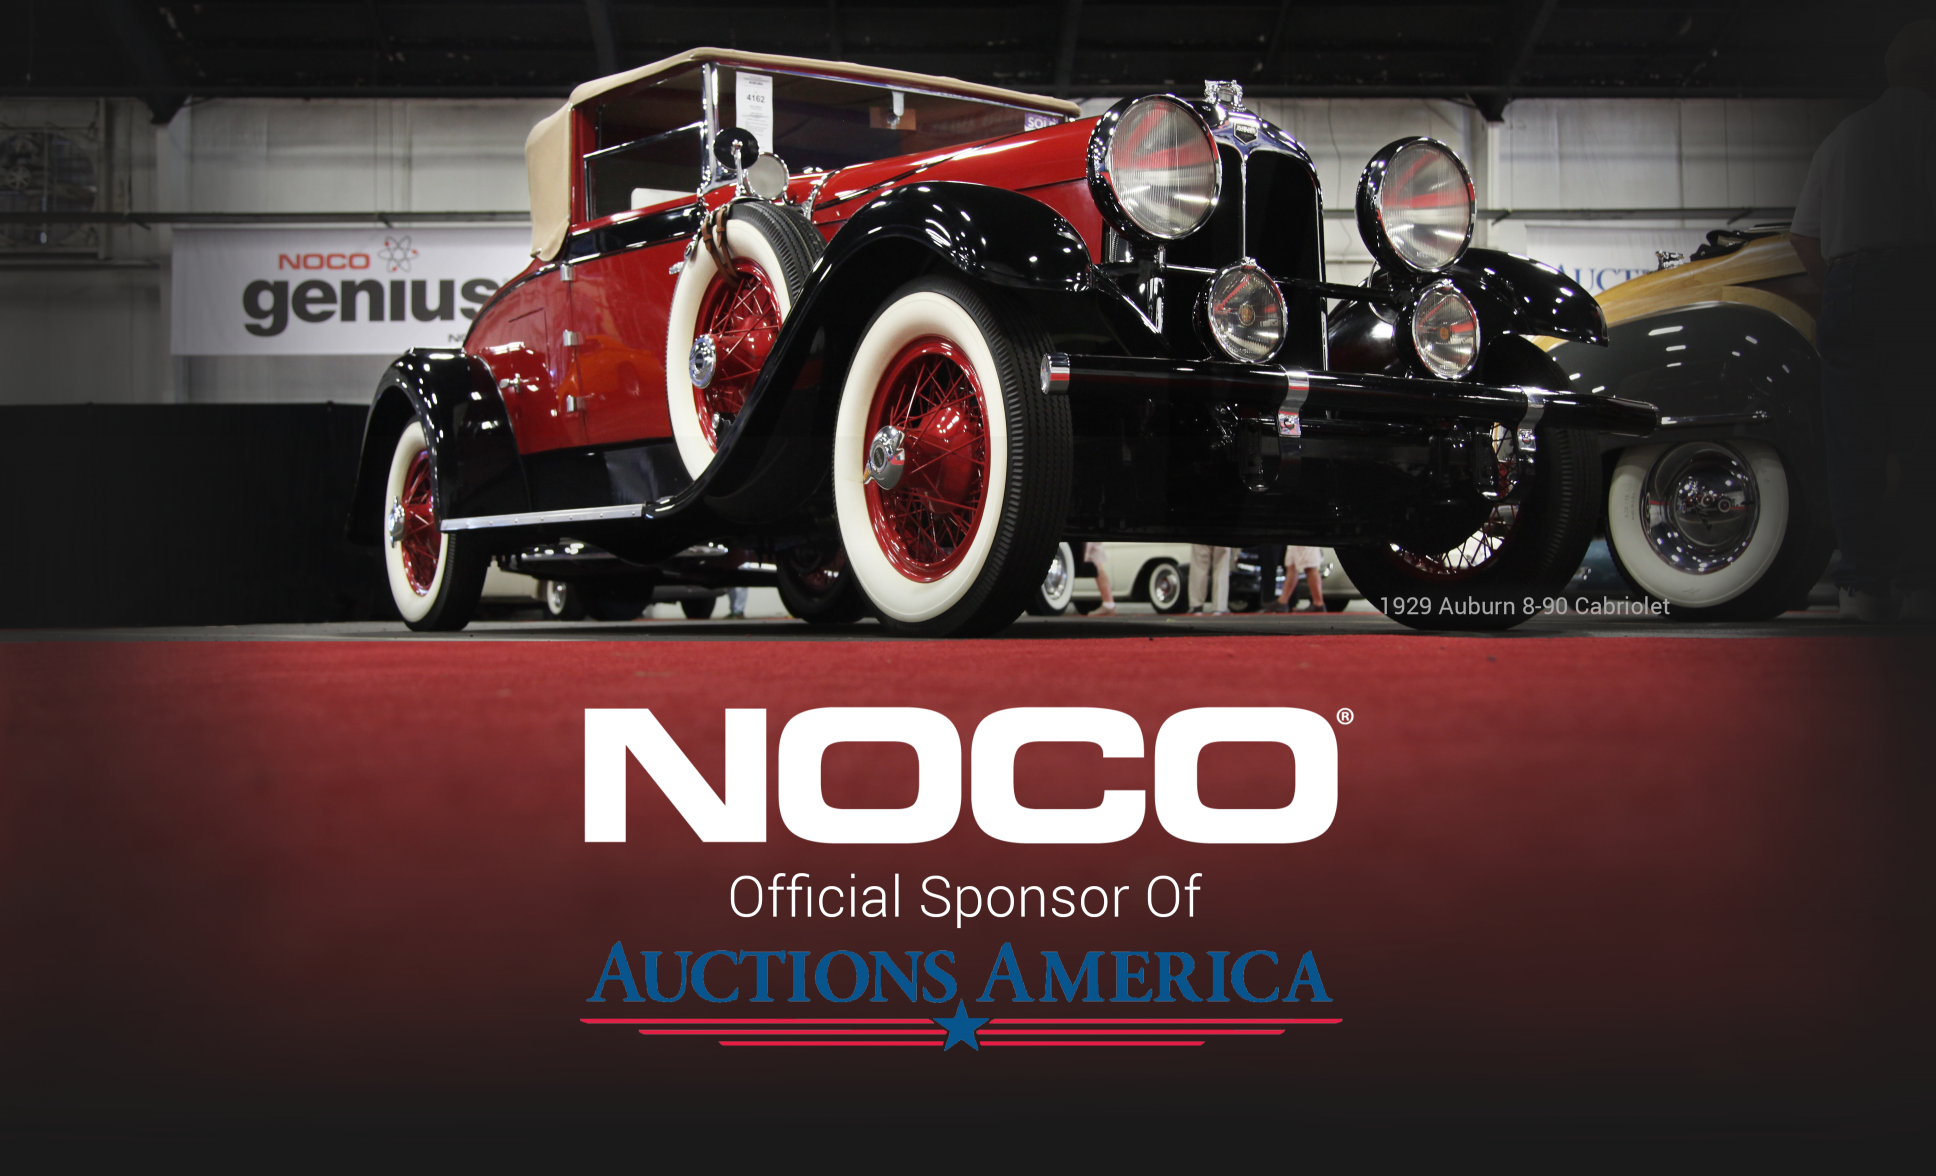 auctions-america-classic-car-show-1.png